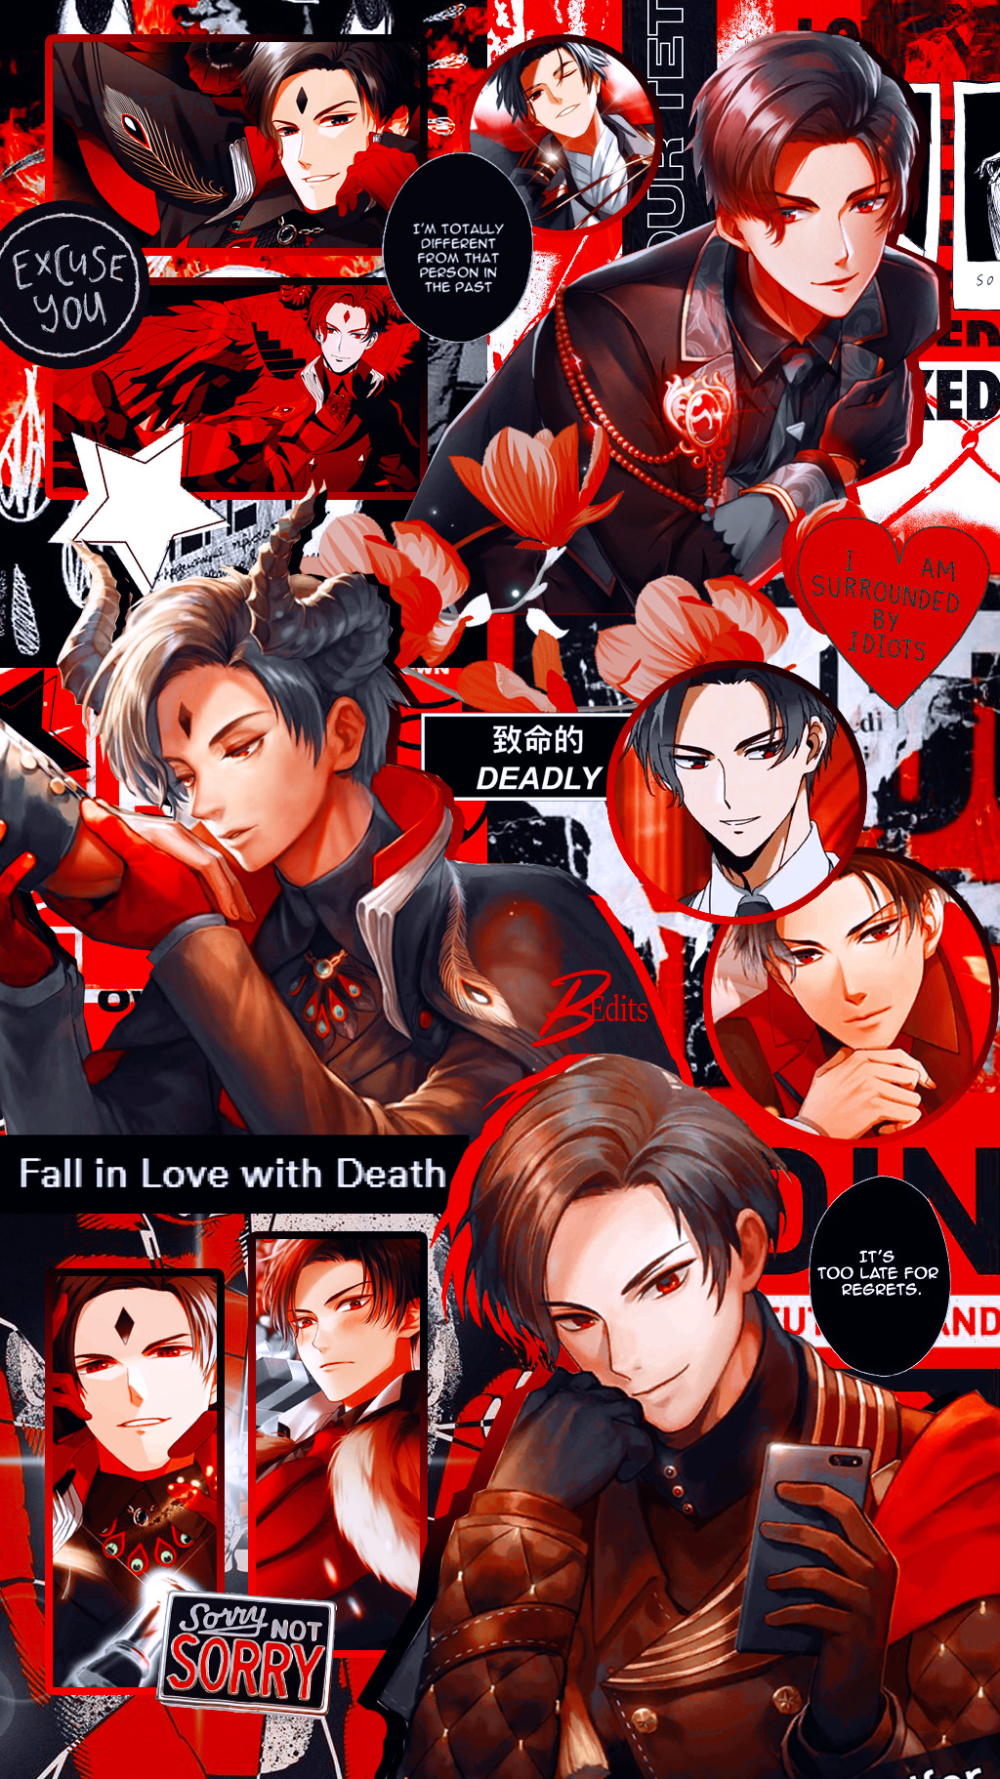 Lucifer Obey Me! in 2020 Obey, Anime wallpaper, Anime